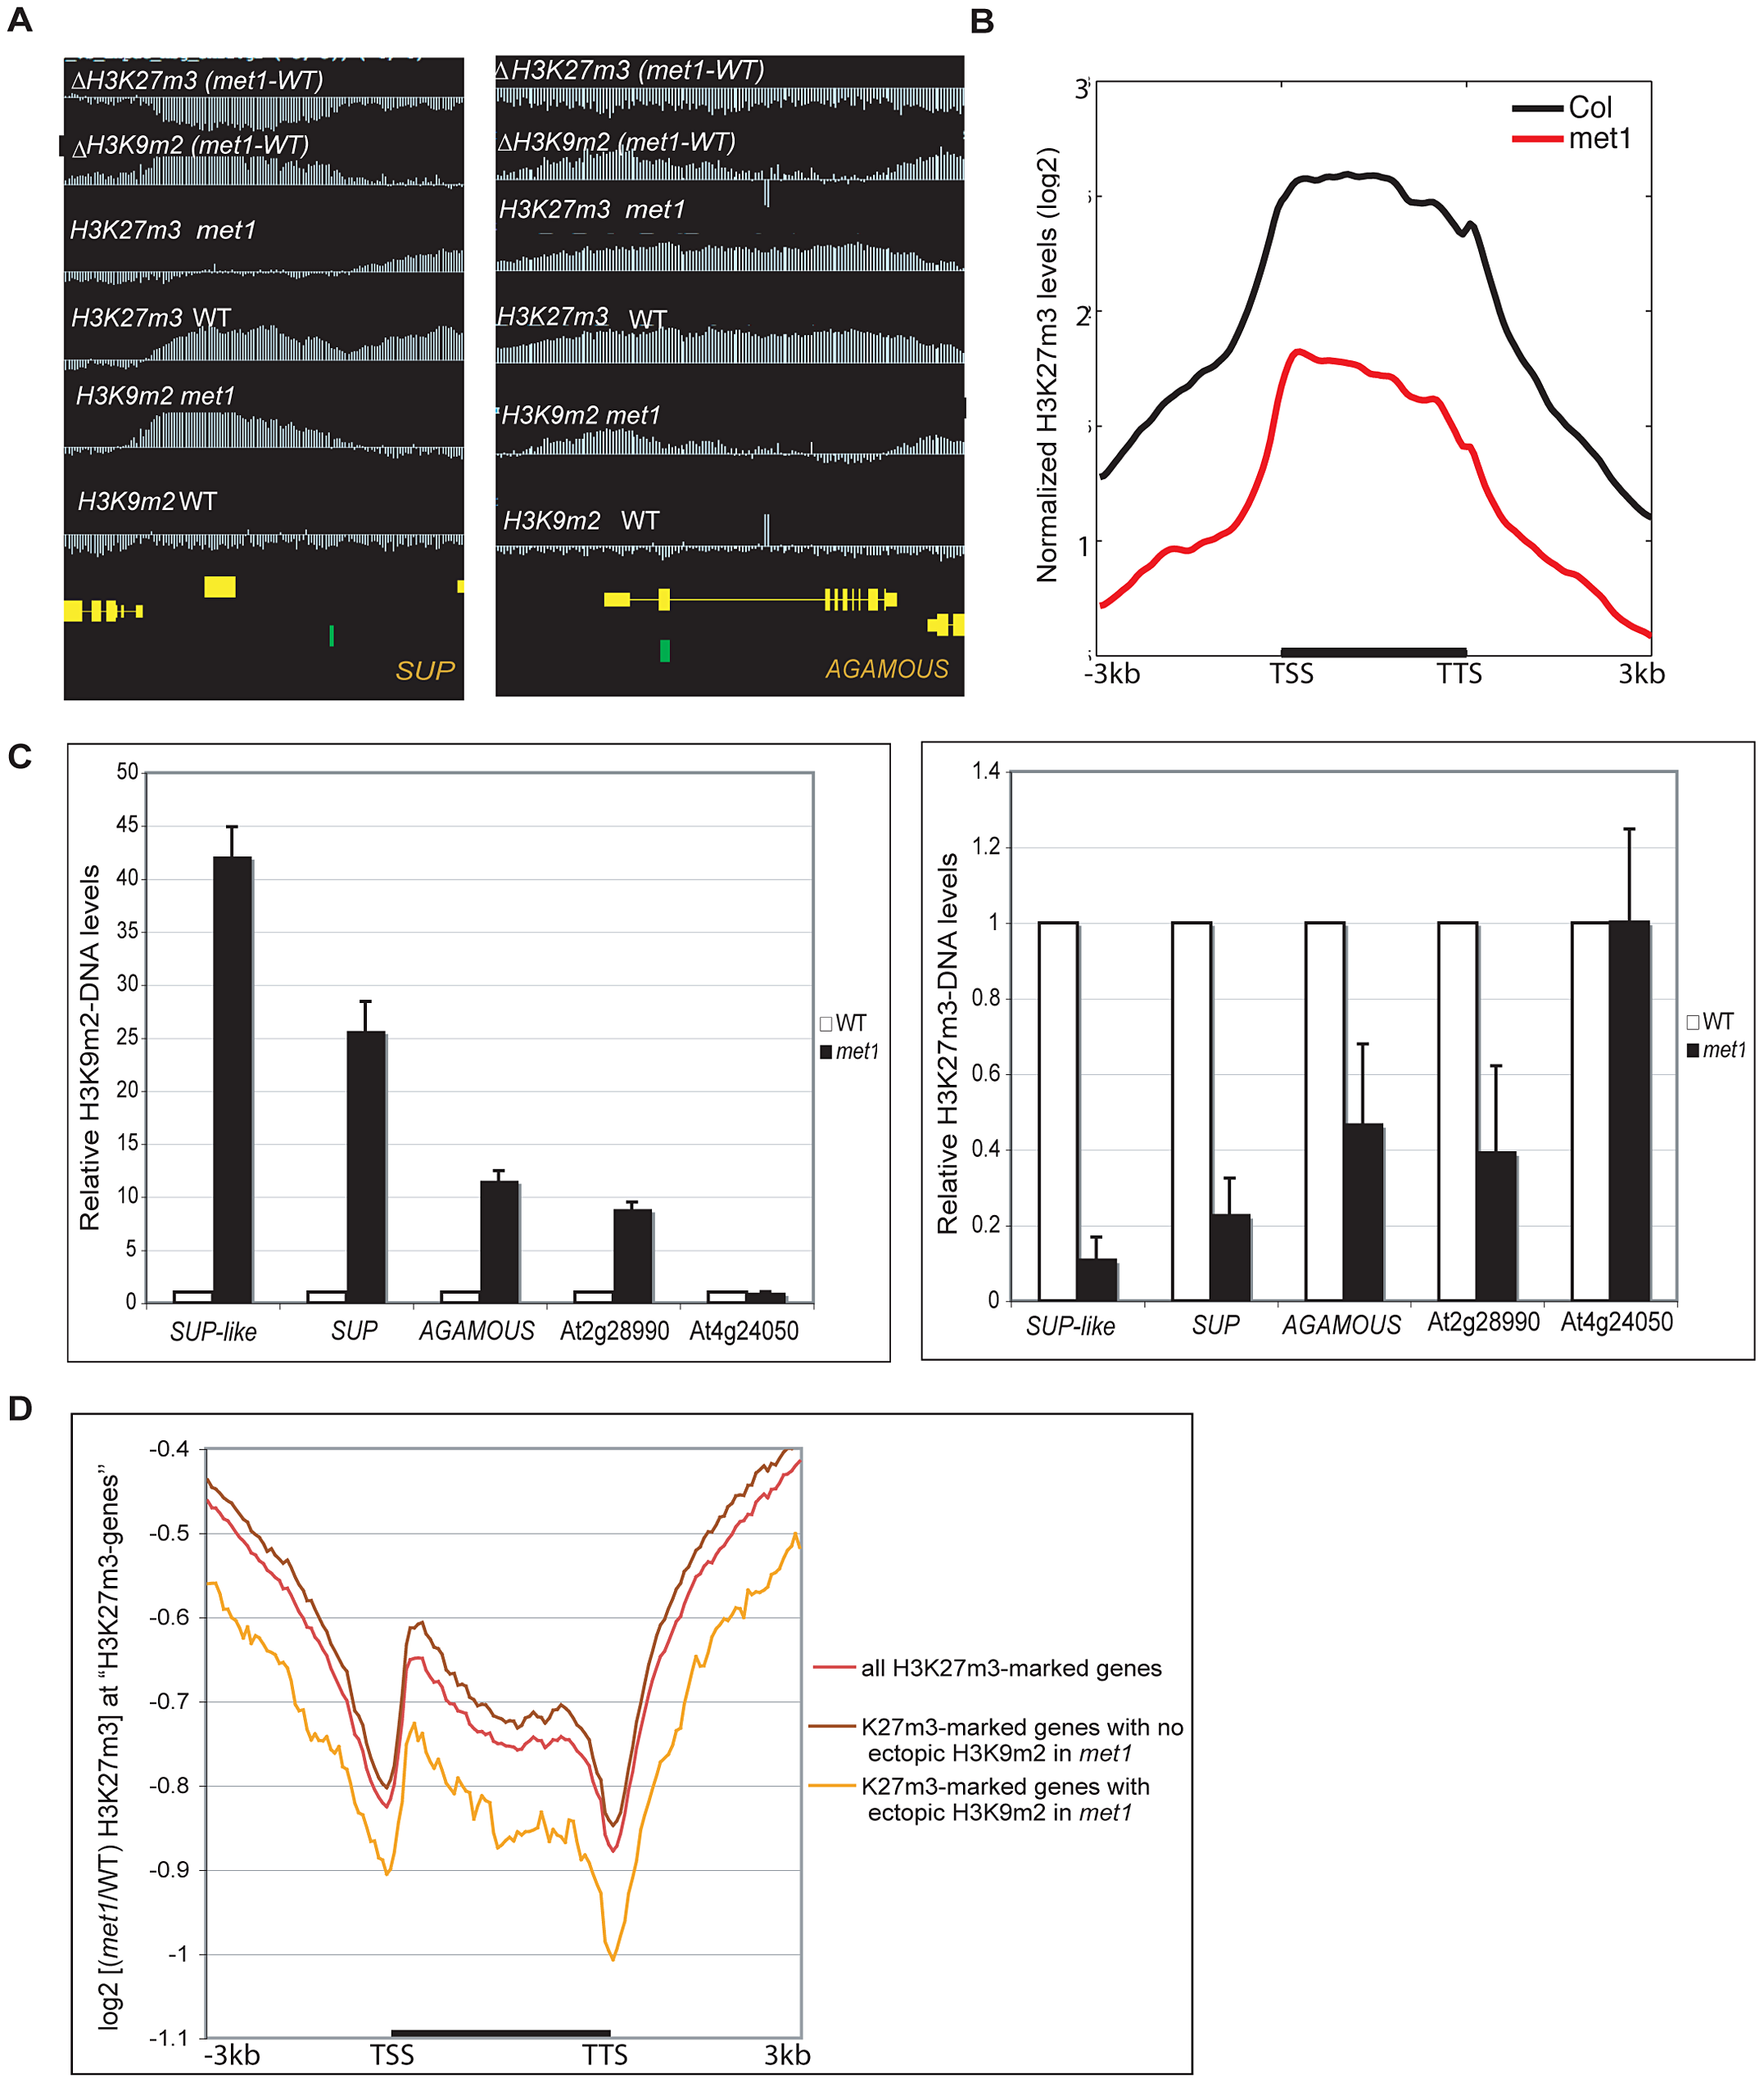 Gain of ectopic H3K9 dimethylation at PcG targets is associated with loss of H3K27m3 in <i>met1</i>.